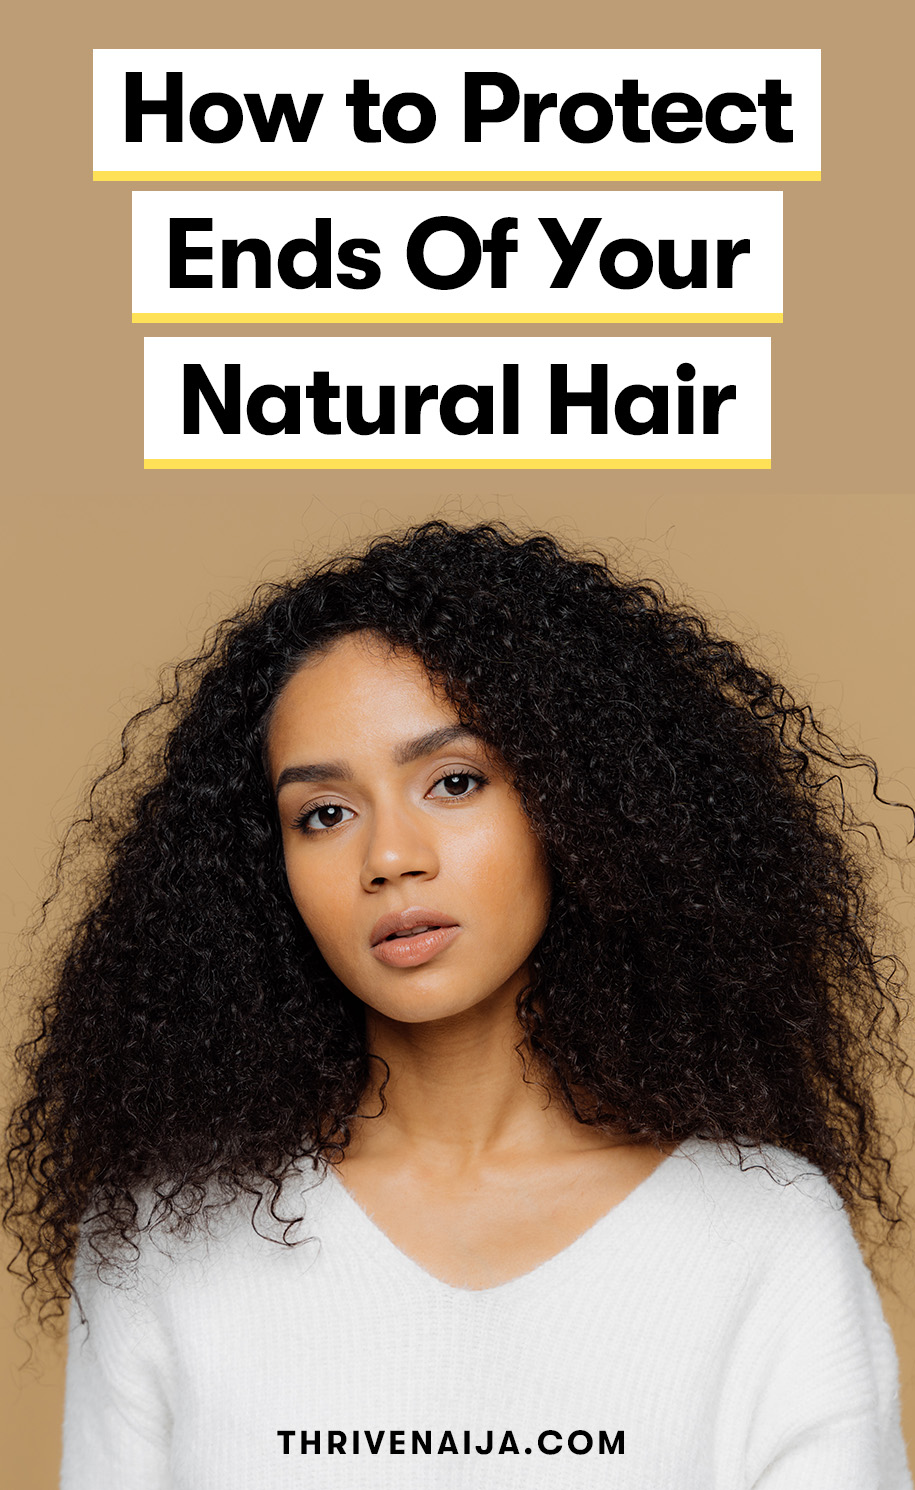 How to Protect Ends Of Natural Hair